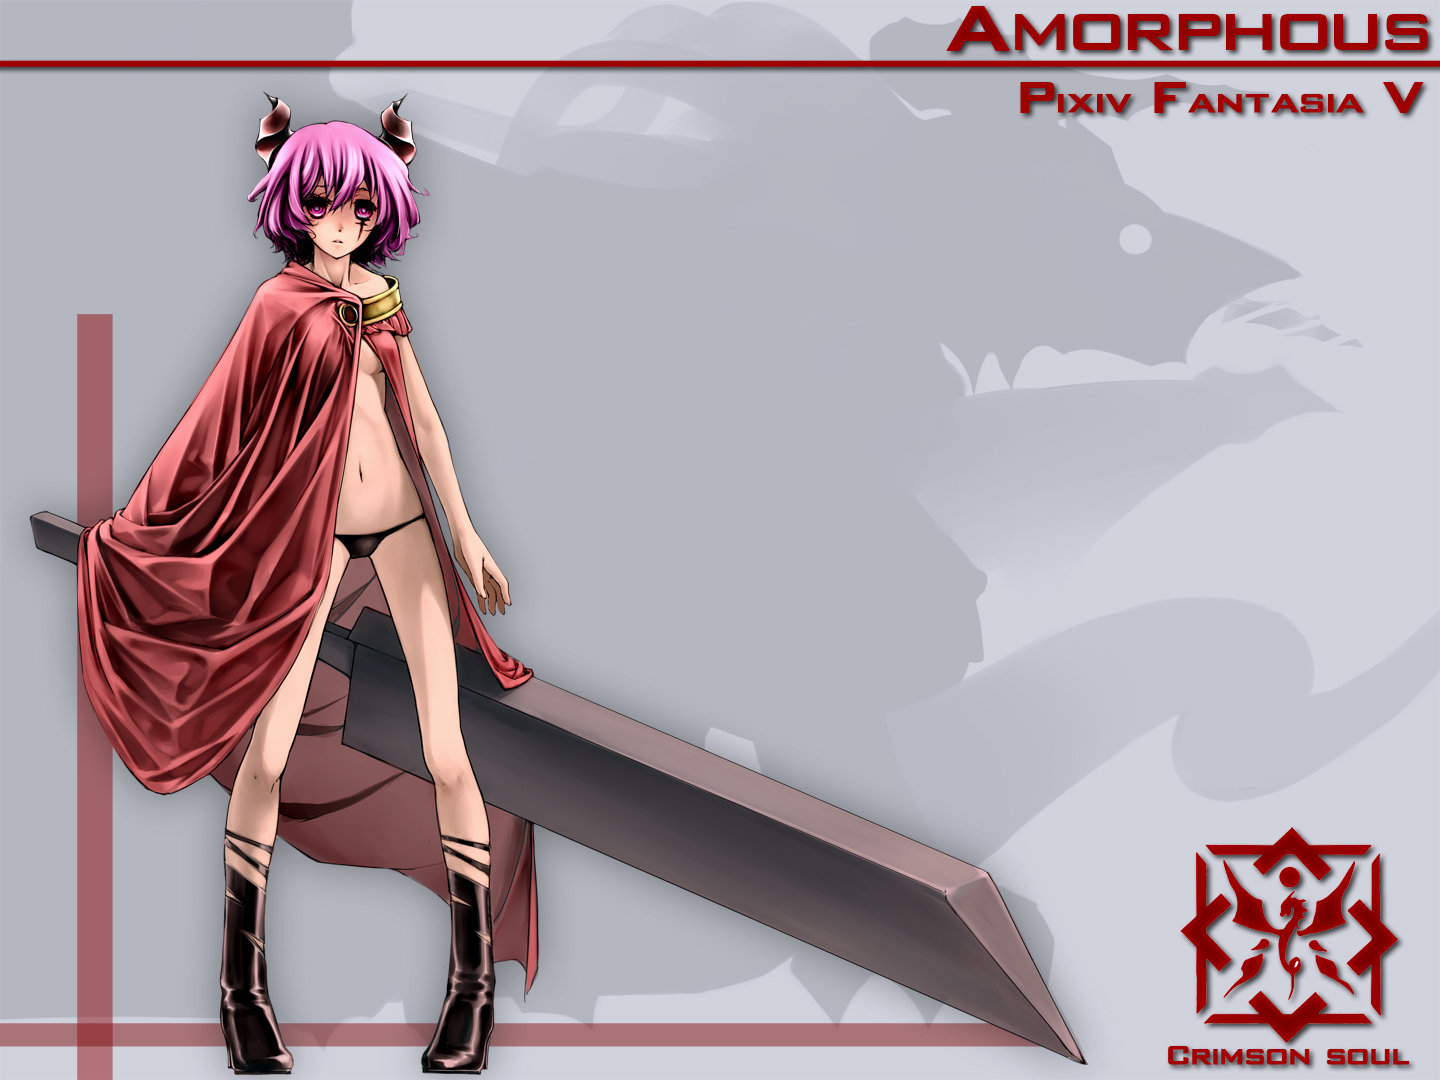 cape horns no_bra panties pixiv_fantasia short_hair sword tinmo underwear weapon